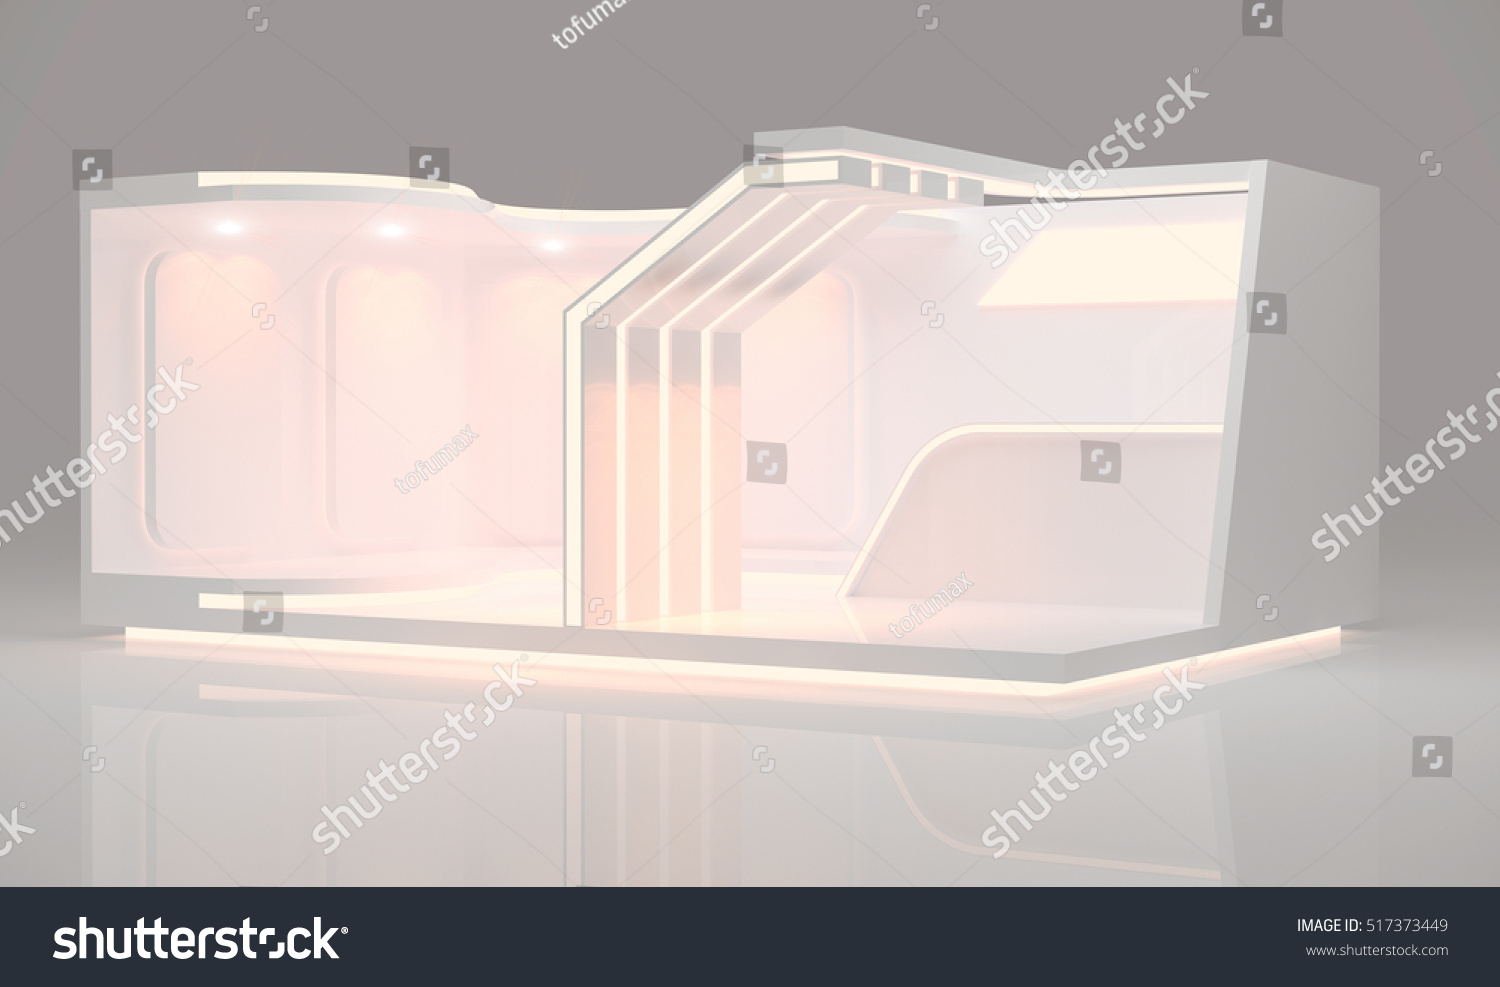 Modern Exhibition Stand Mixer : Modern booth exhibition design d image stock illustration